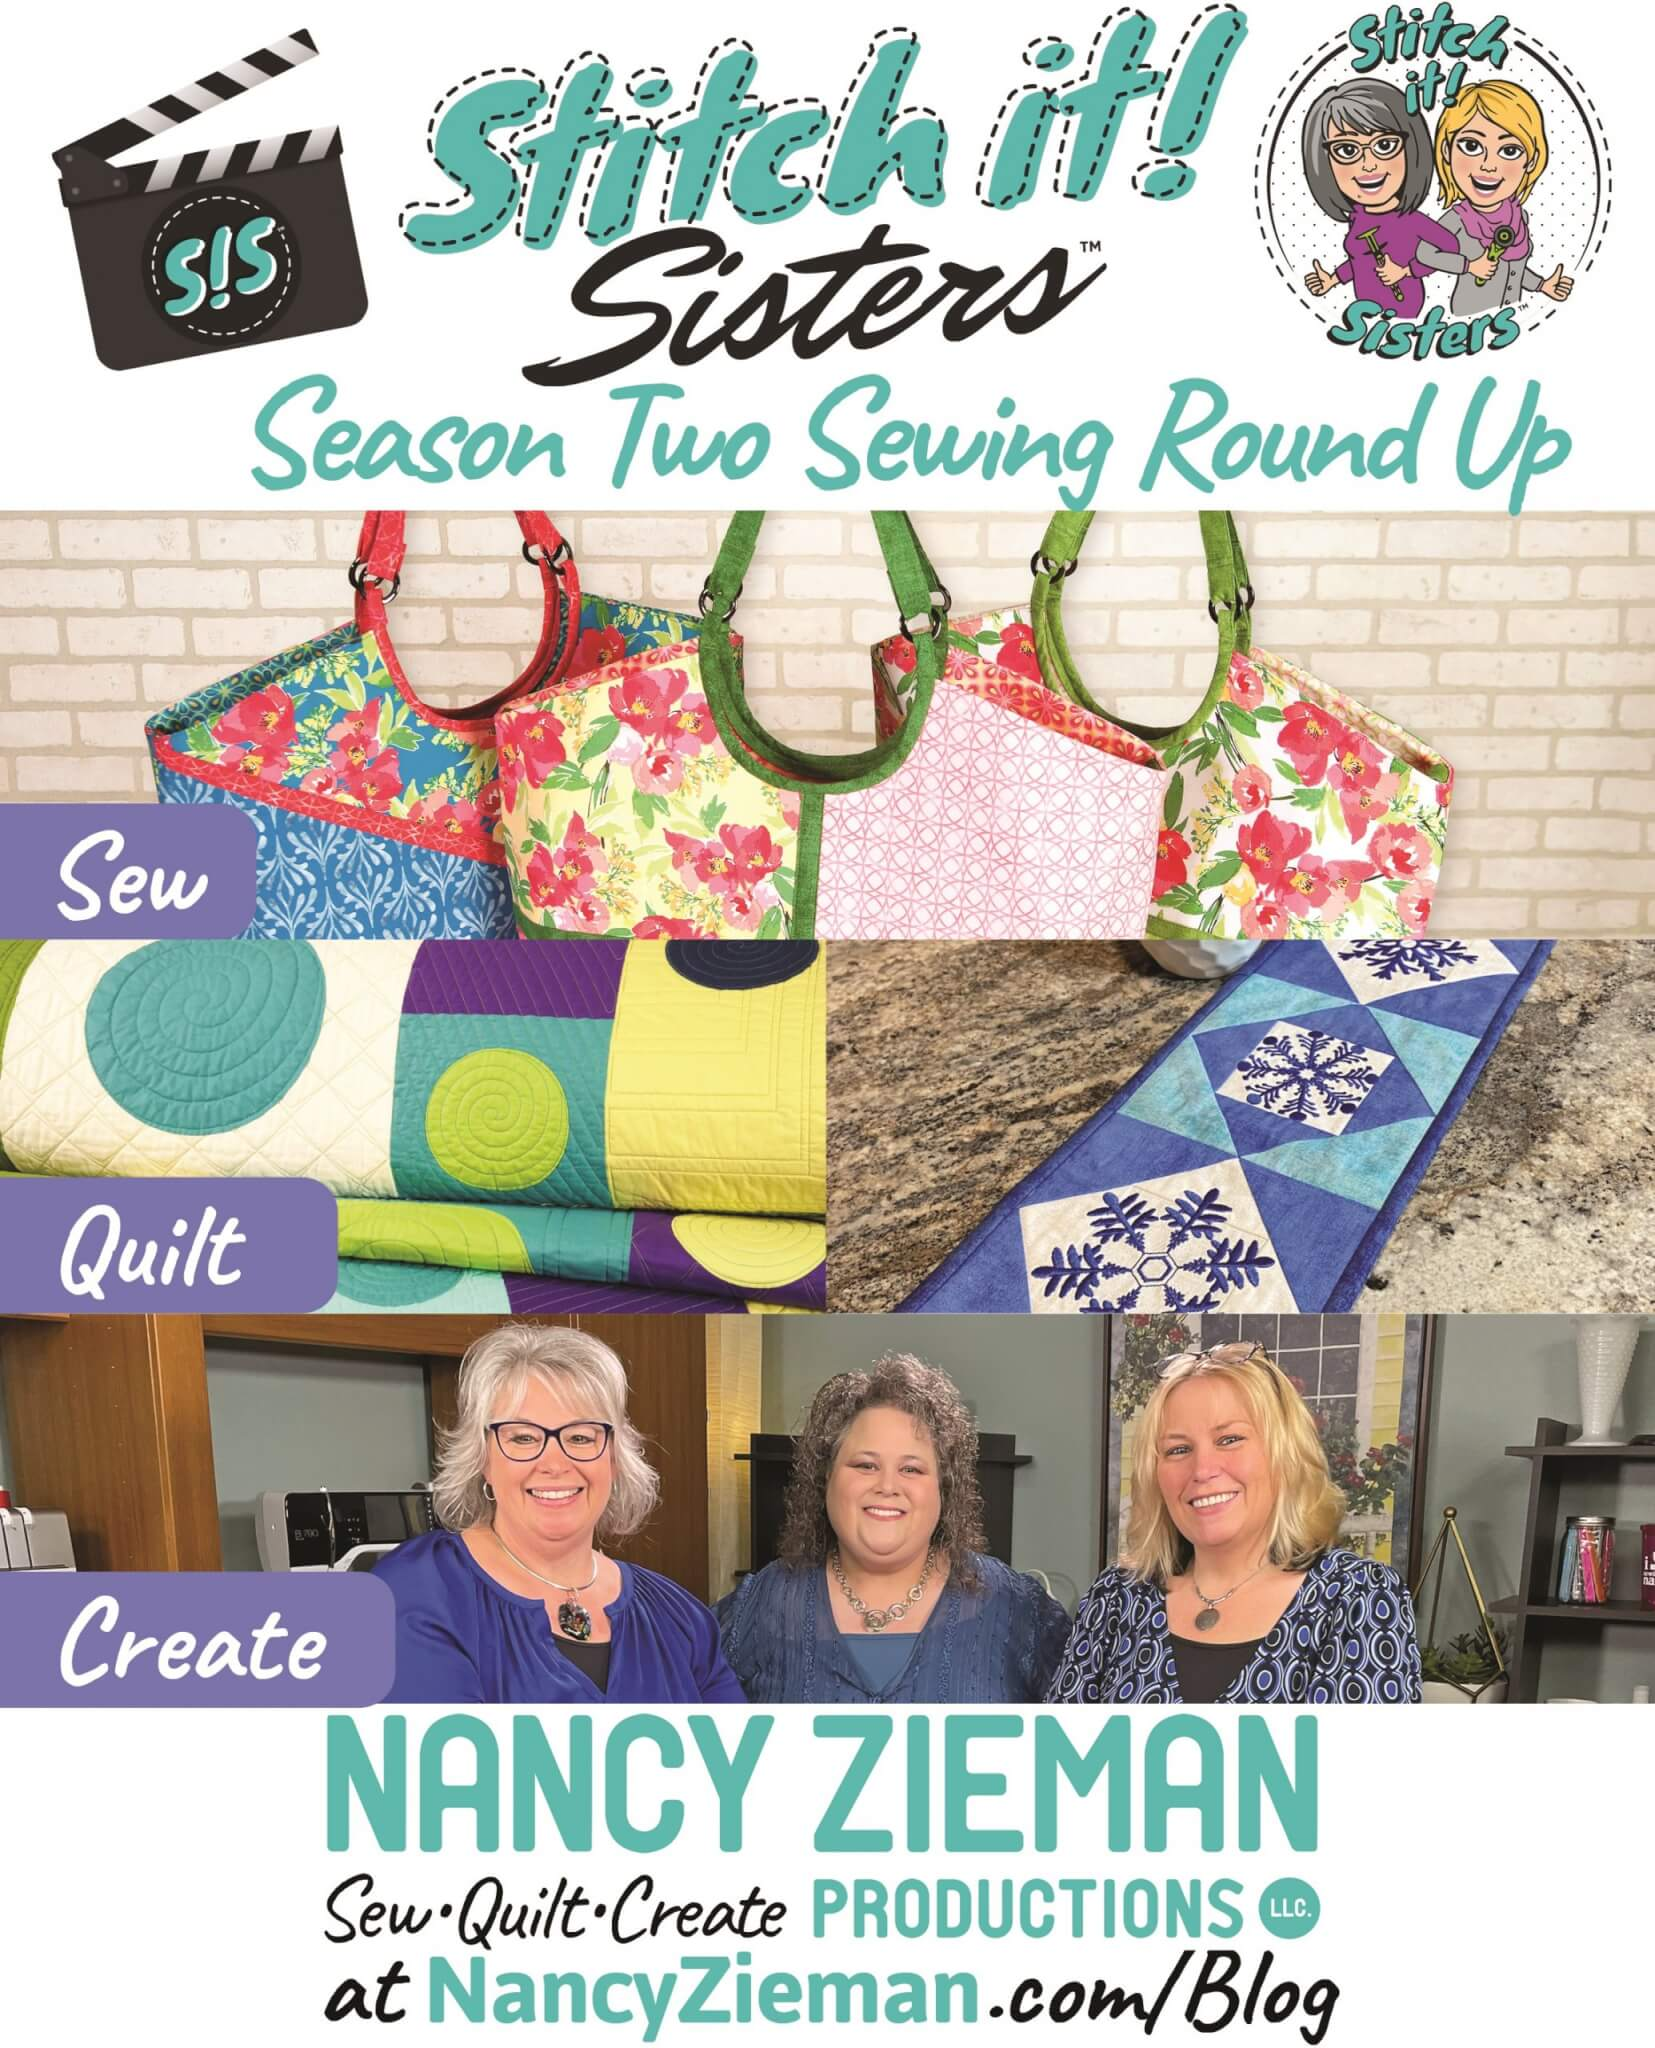 Stitch it! Sisters Season Two Round Up at The Nancy Zieman Productions Blog